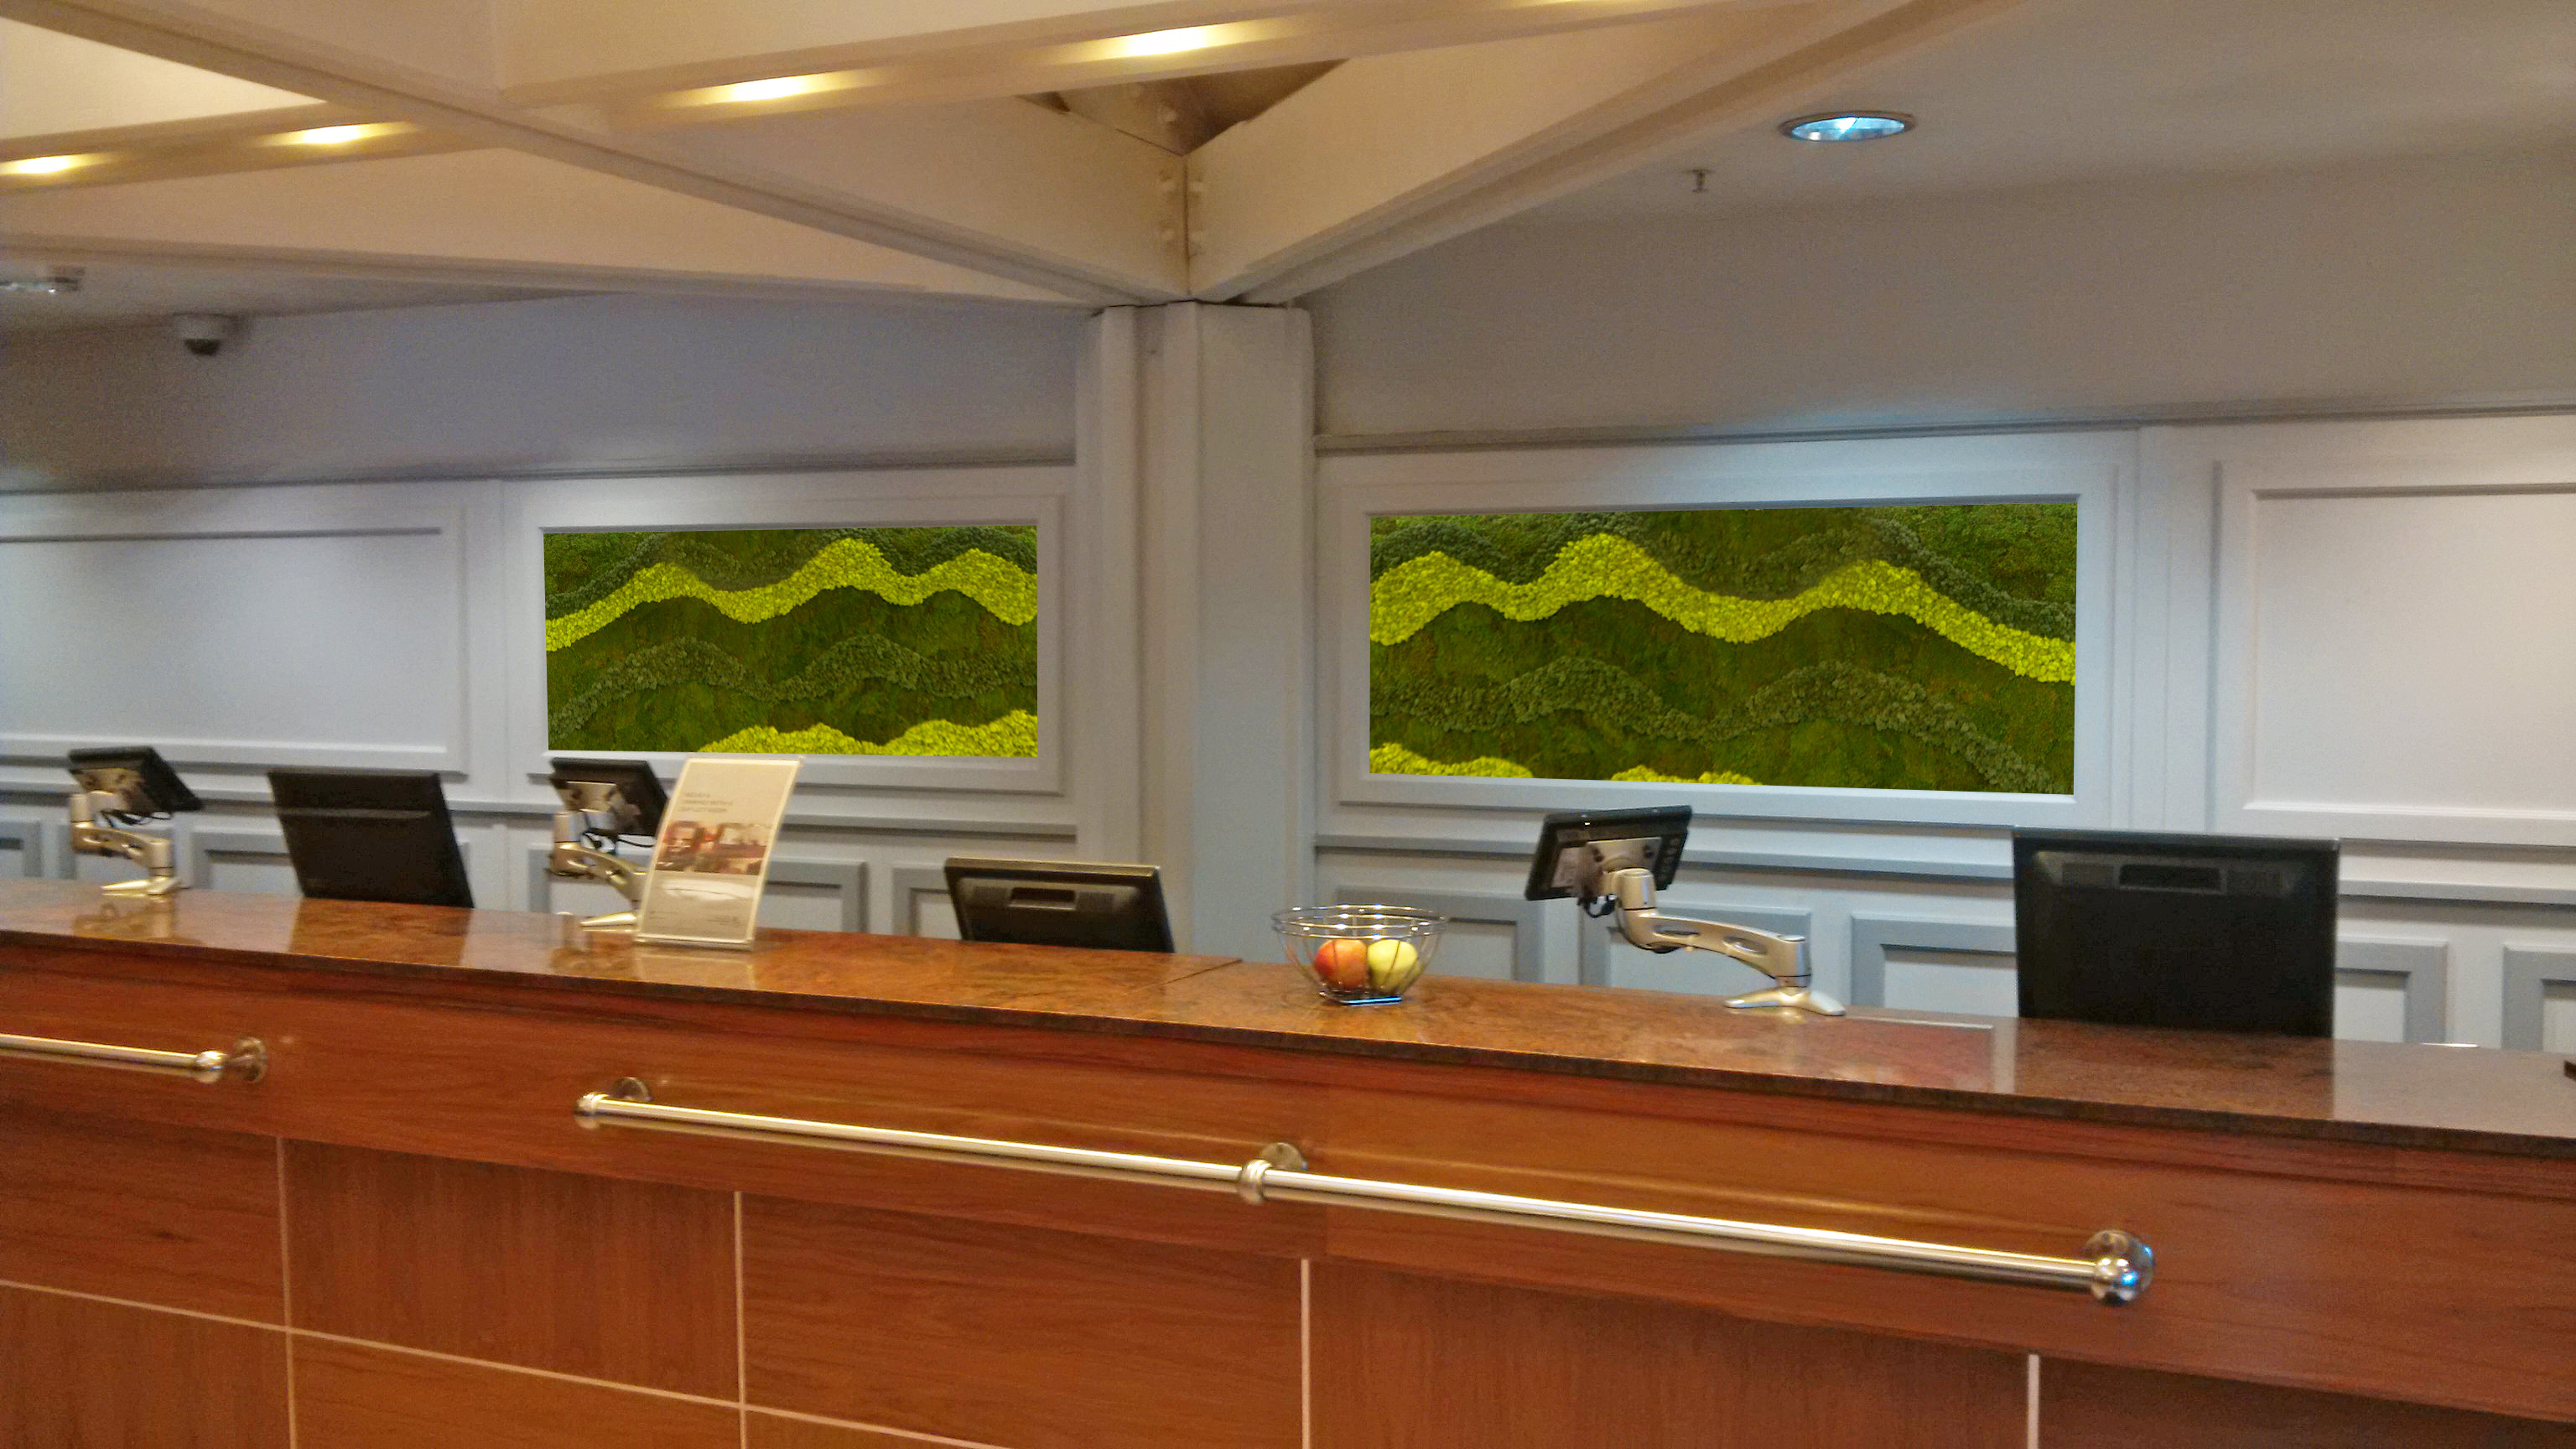 Moss Walls from Leaflike - Gallery Image 11